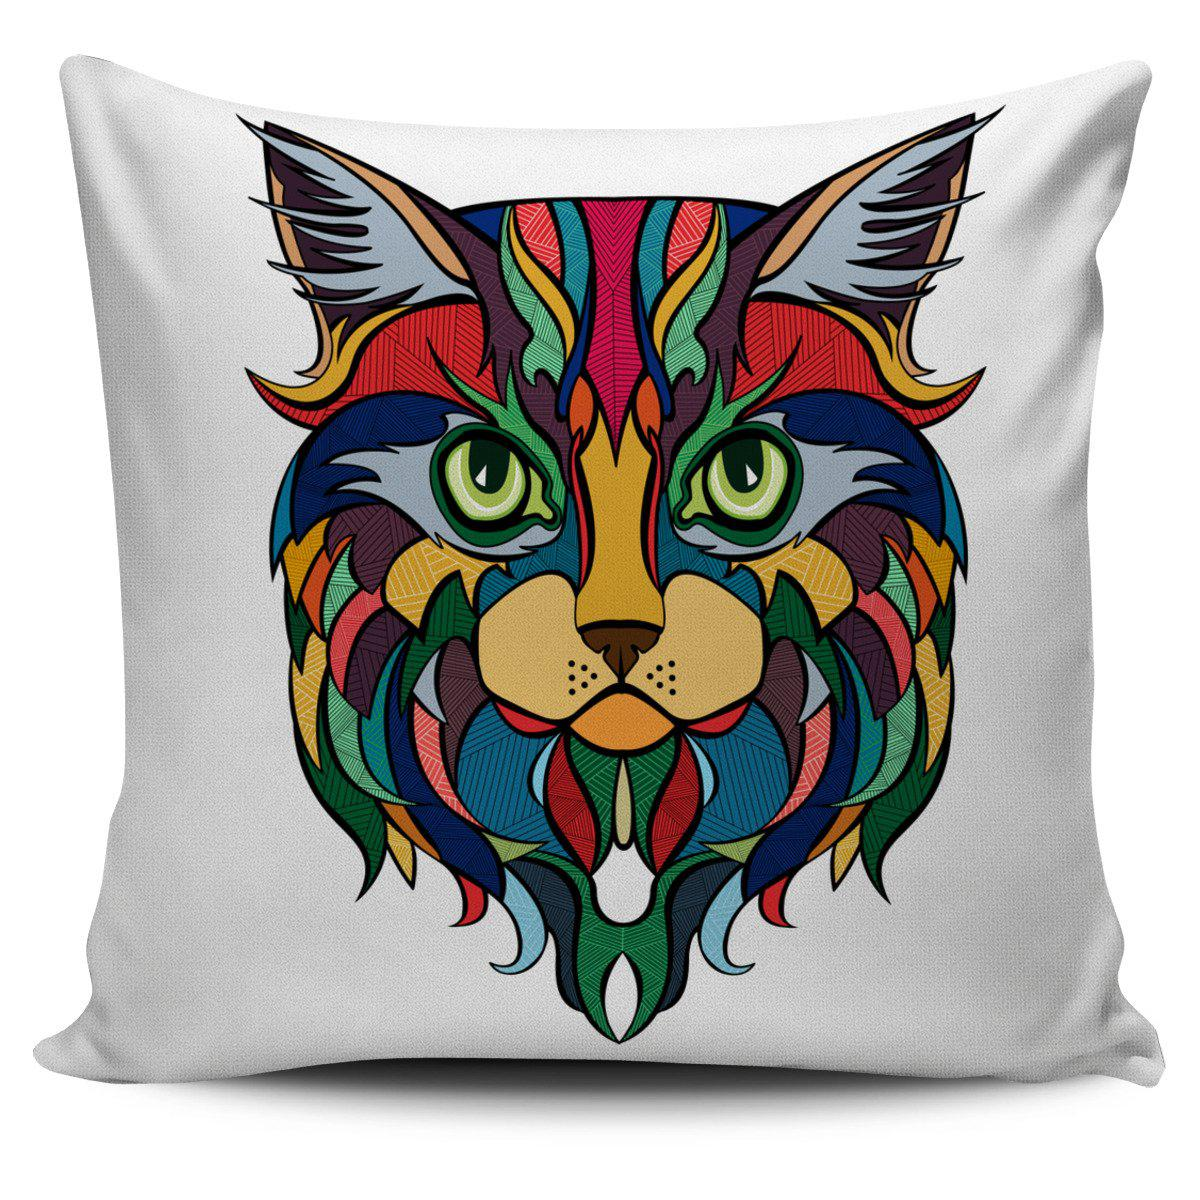 Shopeholic:Cat 02 Pillow Cover